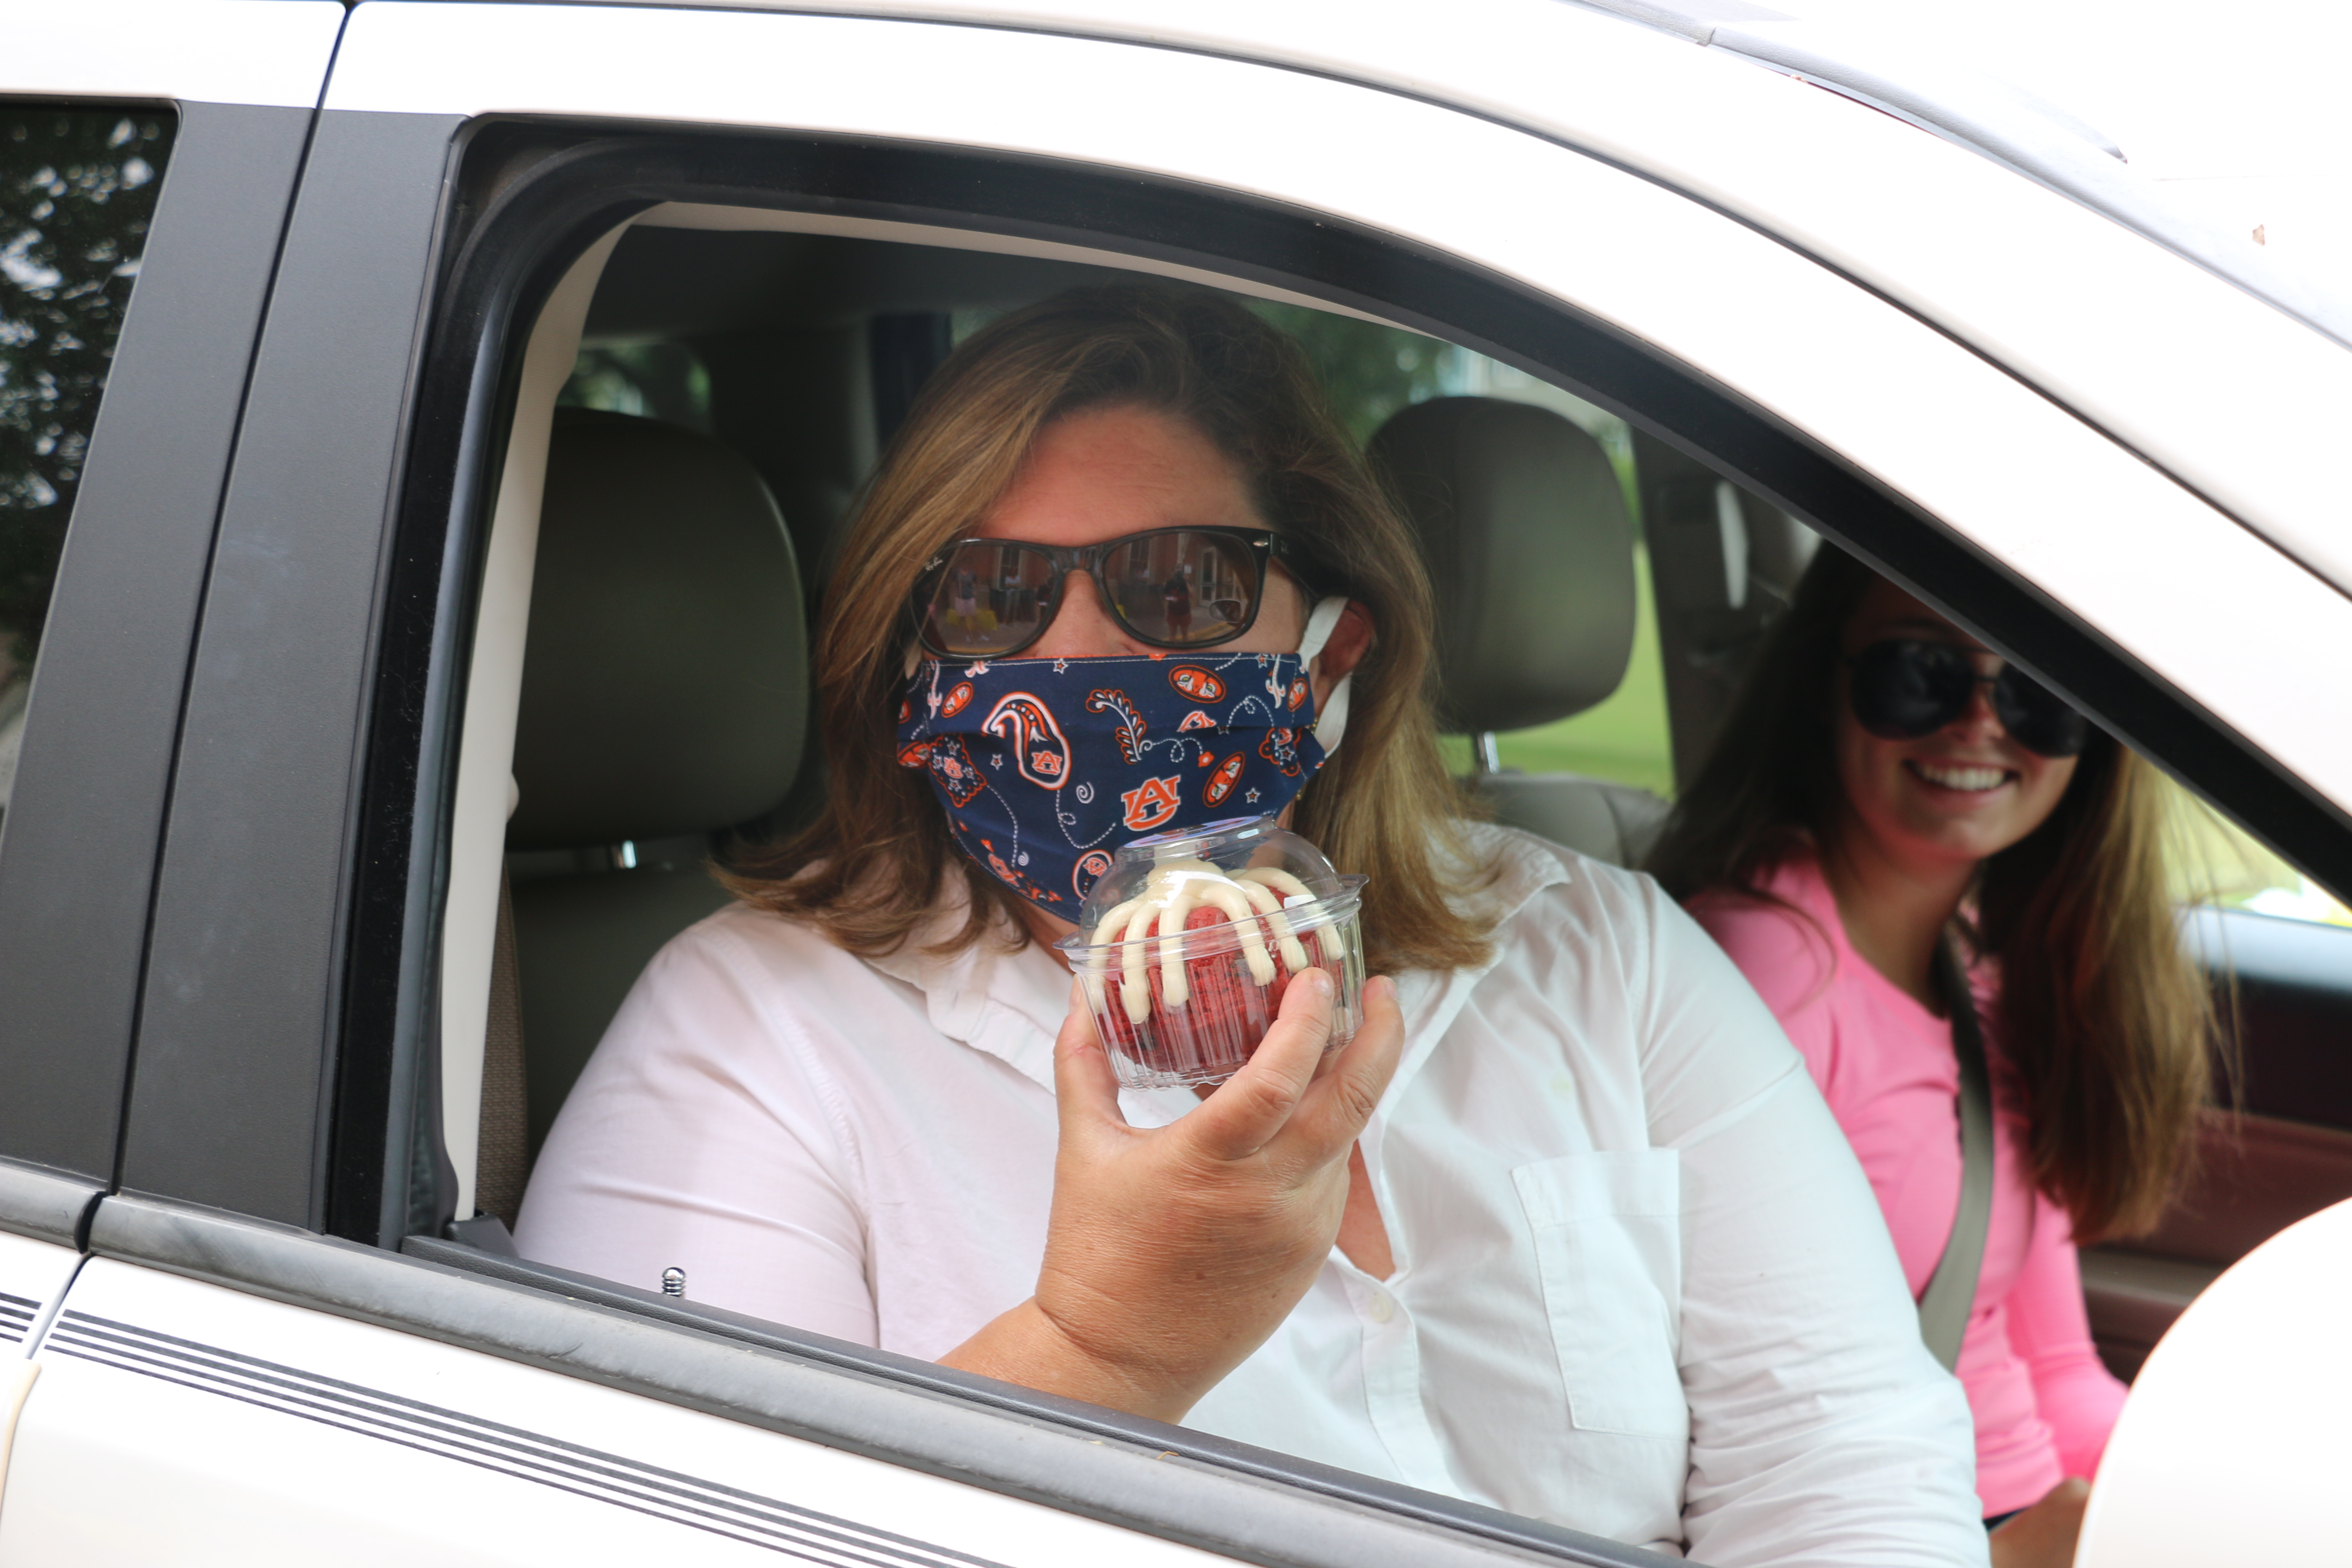 Kindergarten teacher Kelly Cobb, wearing a mask and holding a treat, was escorted to the teacher appreciation event at Daniel Island School by her daughter, Amelia.